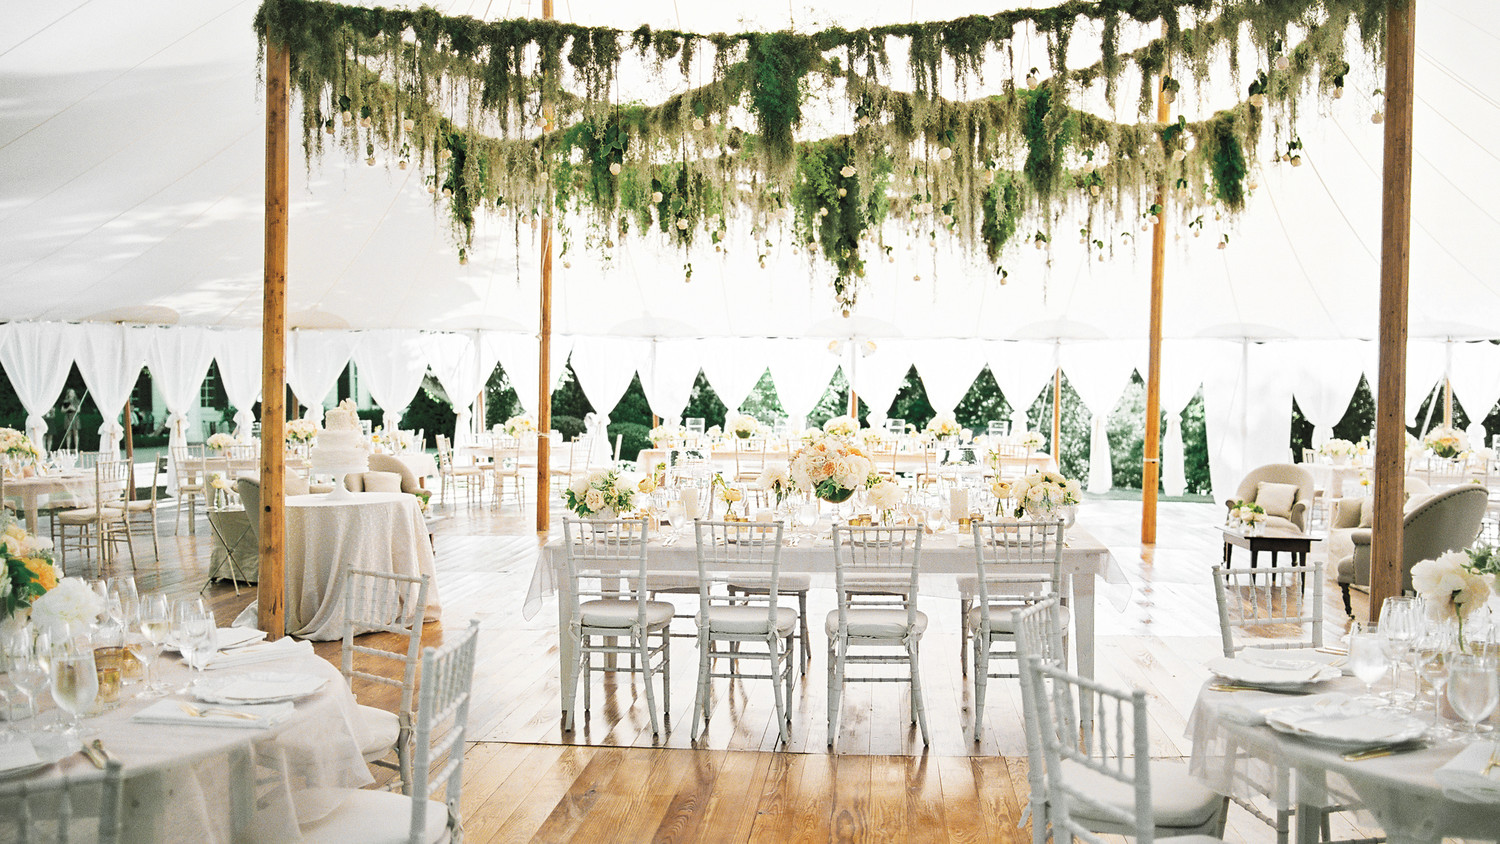 28 tent decorating ideas that will upgrade your wedding reception martha stewart weddings Home wedding design ideas